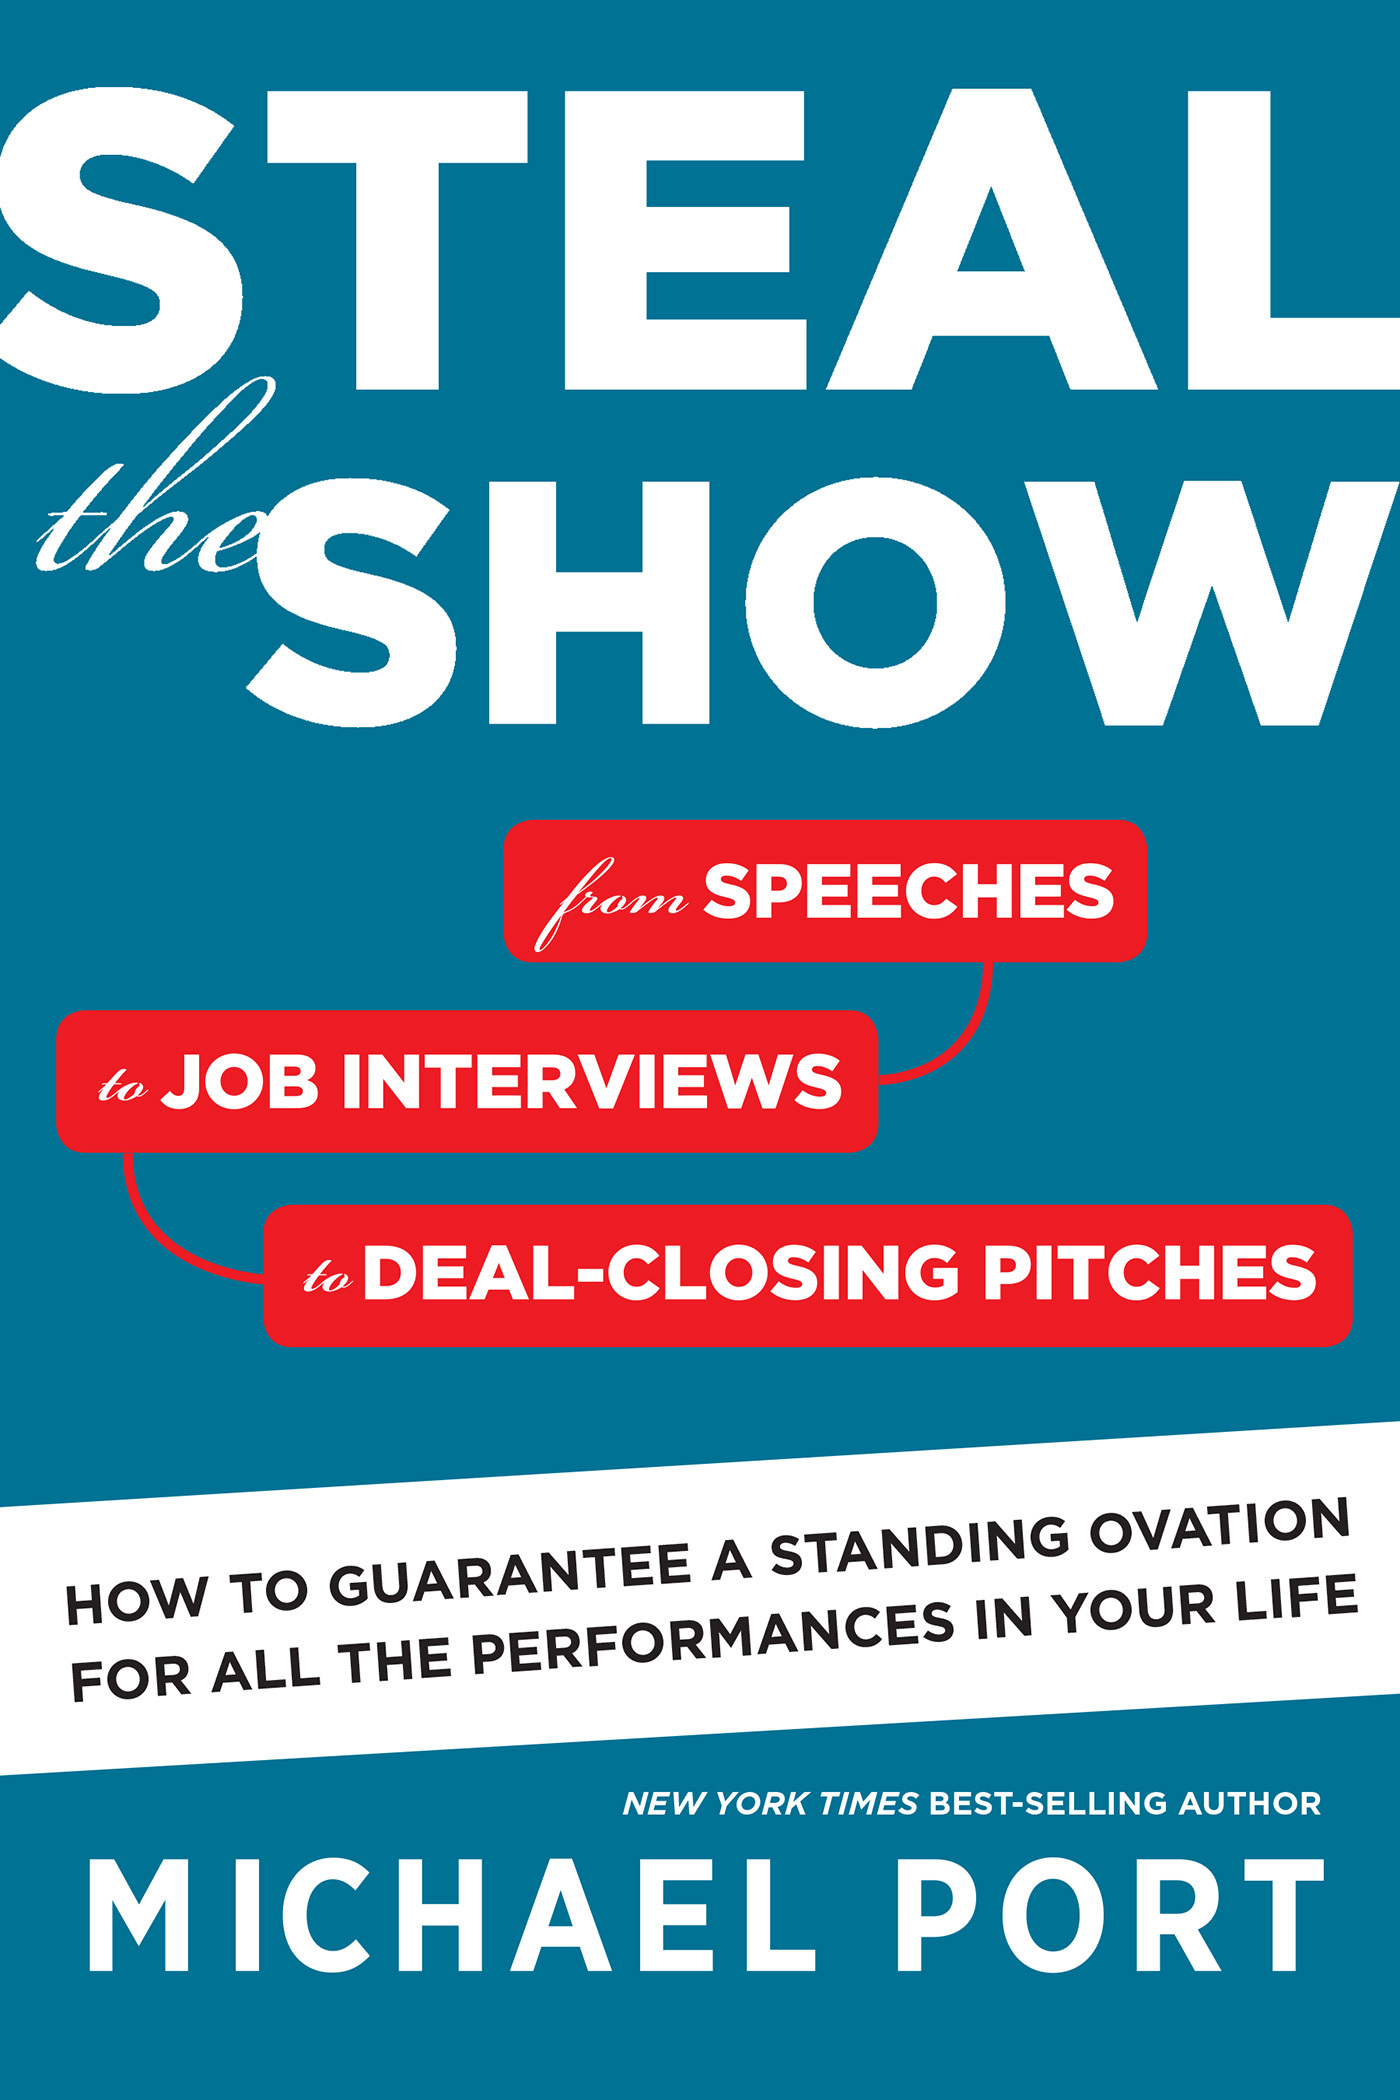 Steal the Show: From Speeches to Job Interviews to Deal-Closing Pitches, How to Guarantee a Standing Ovation for All the Performances in Your Life